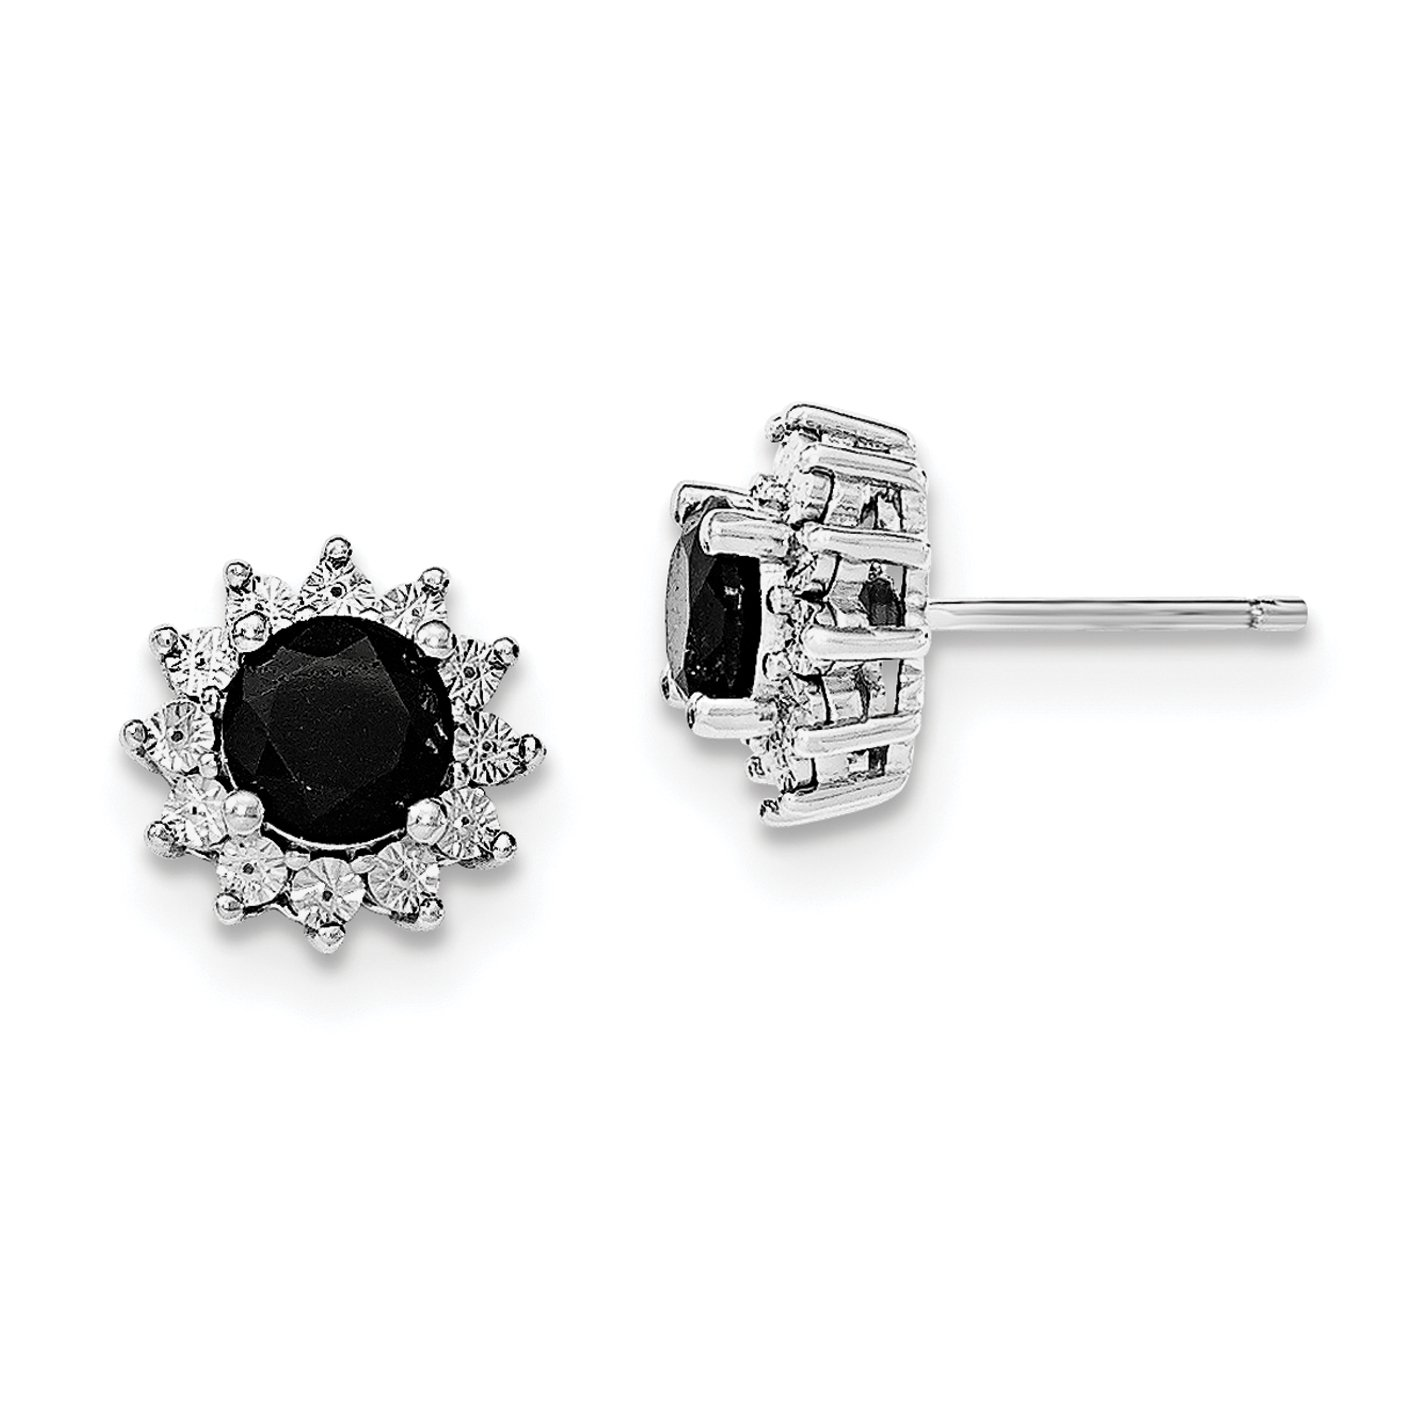 ICE CARATS 925 Sterling Silver Black Sapphire Post Stud Ball Button Earrings Fine Jewelry Gift Set For Women Heart